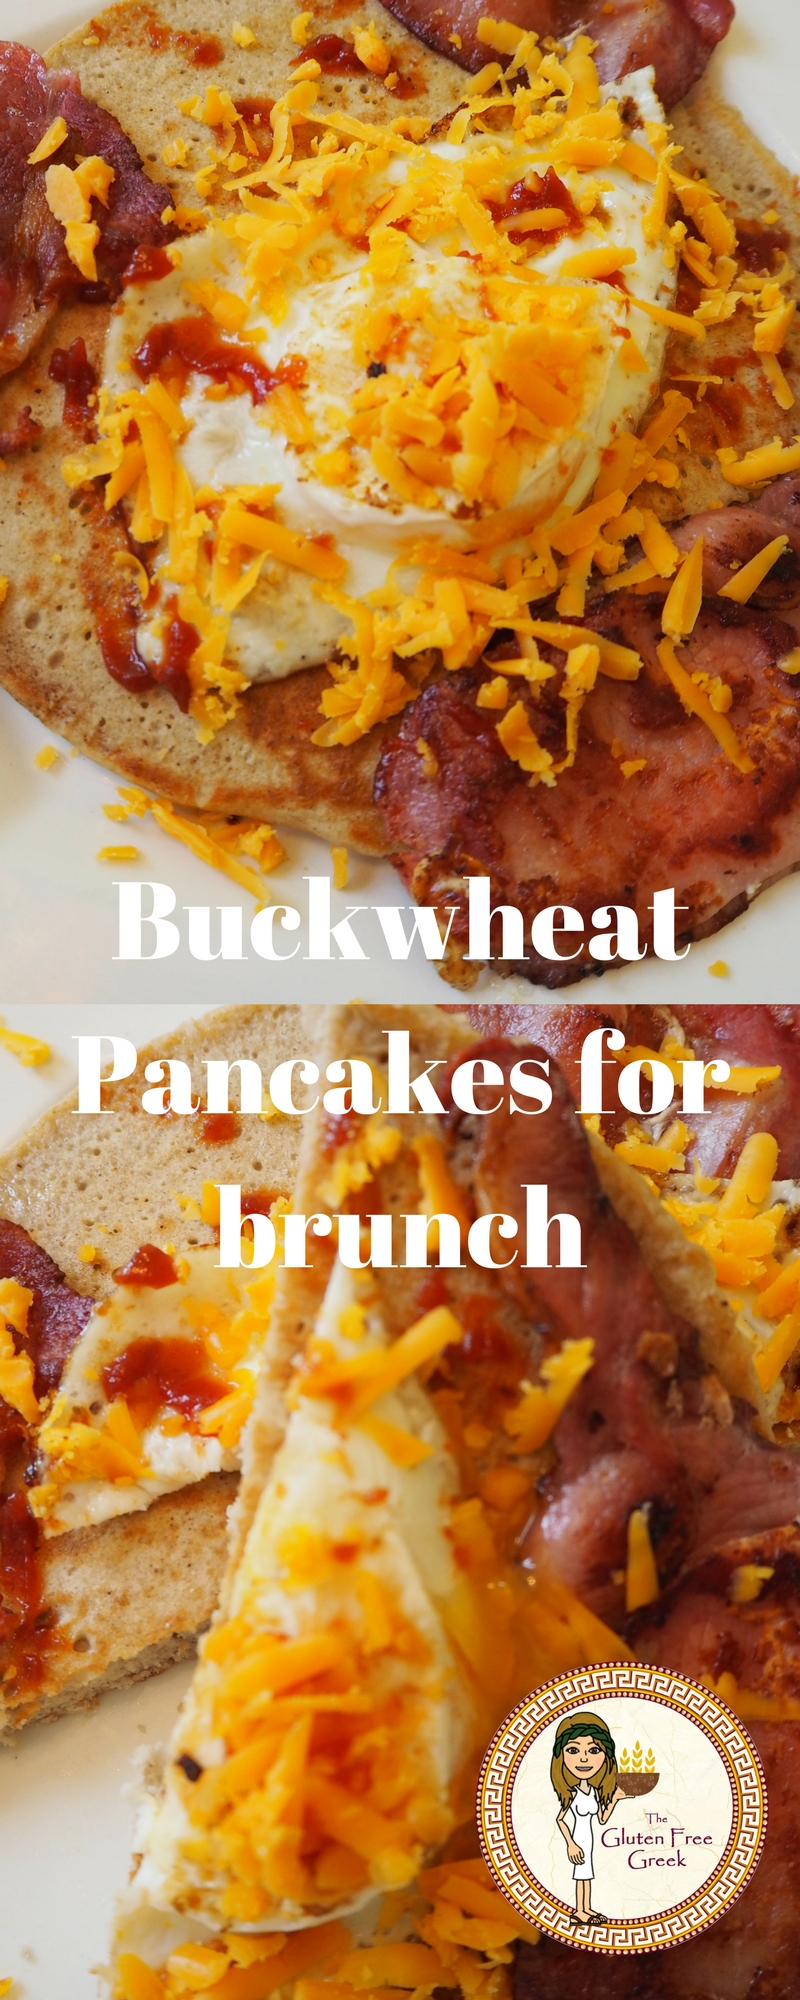 buckwheat pancakes for brunch